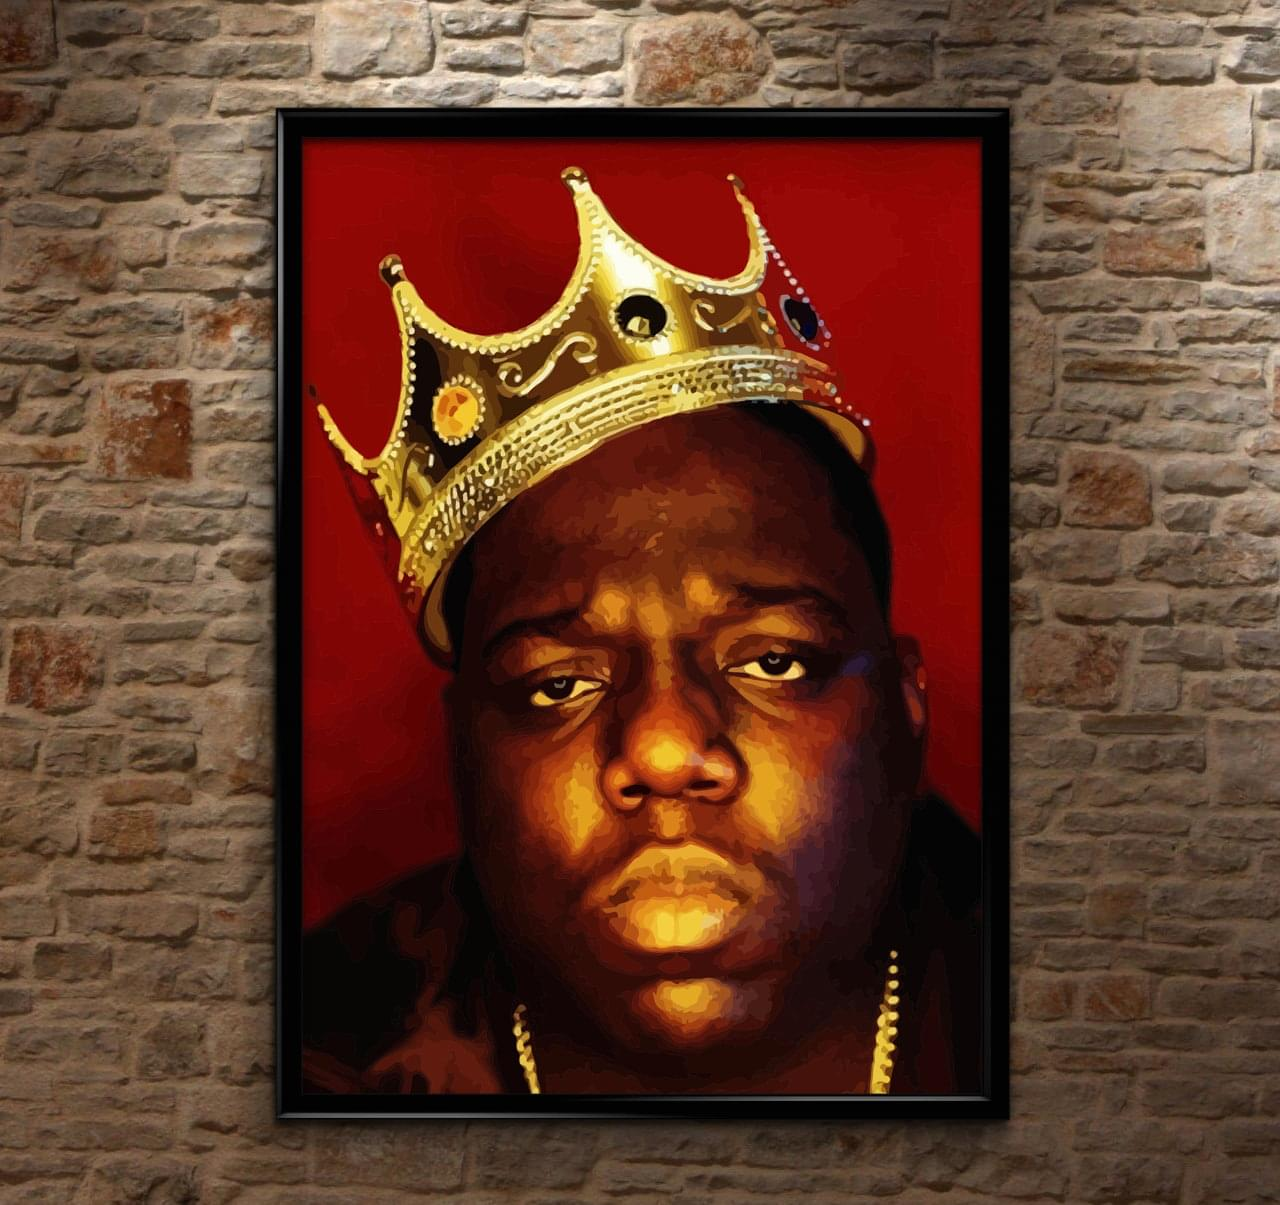 Happy Birthday to The Notorious B.I.G.